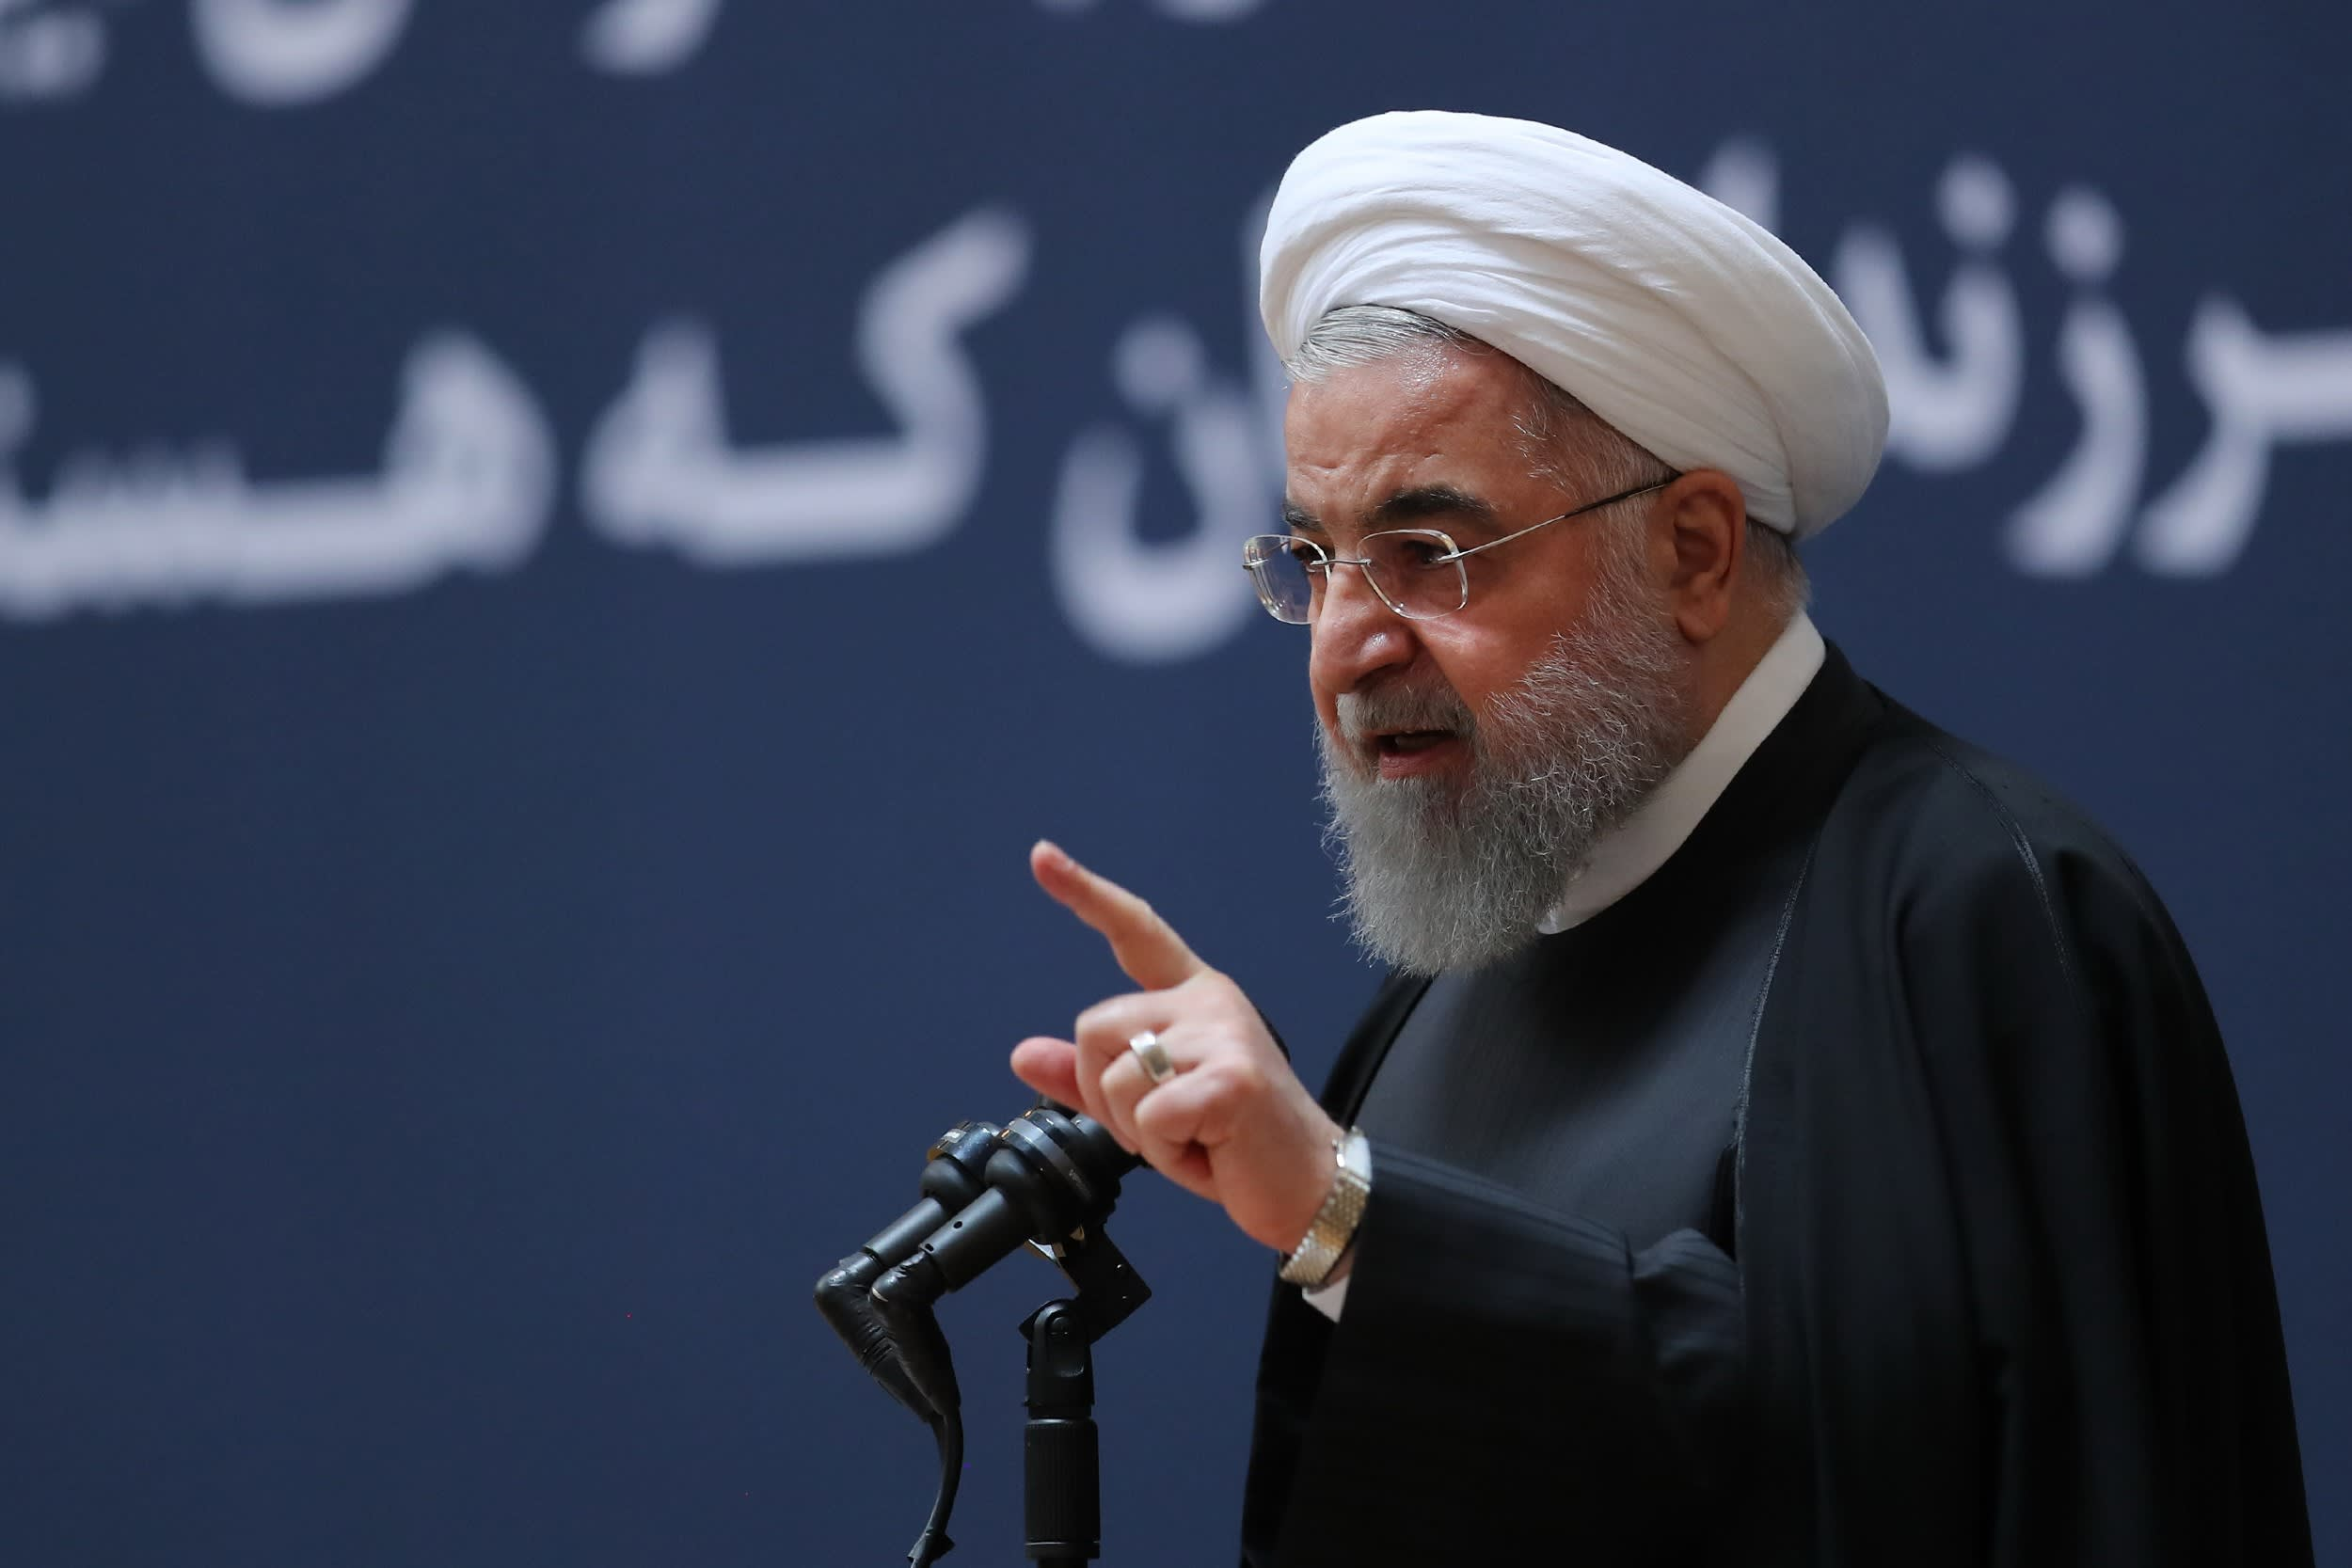 Iran's Rouhani blames US, Saudi for conflict in region